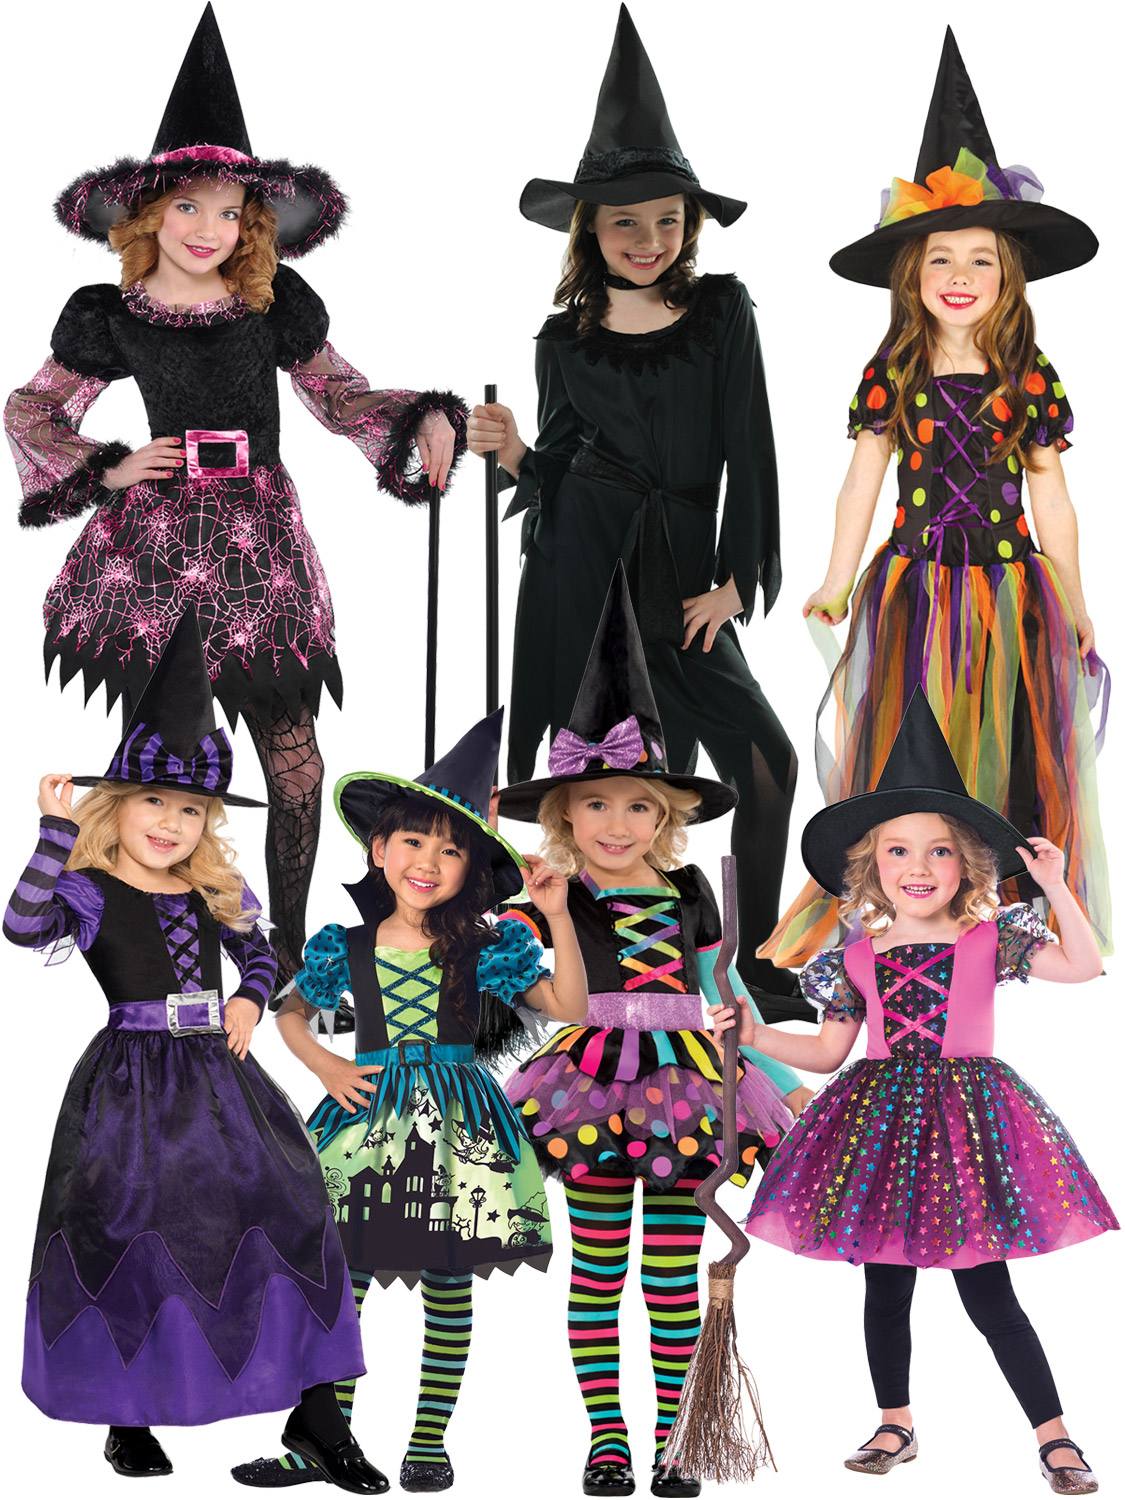 e323e7a85d28 Girls Halloween Witch Costume Toddler Fancy Dress Outfit Childrens ...